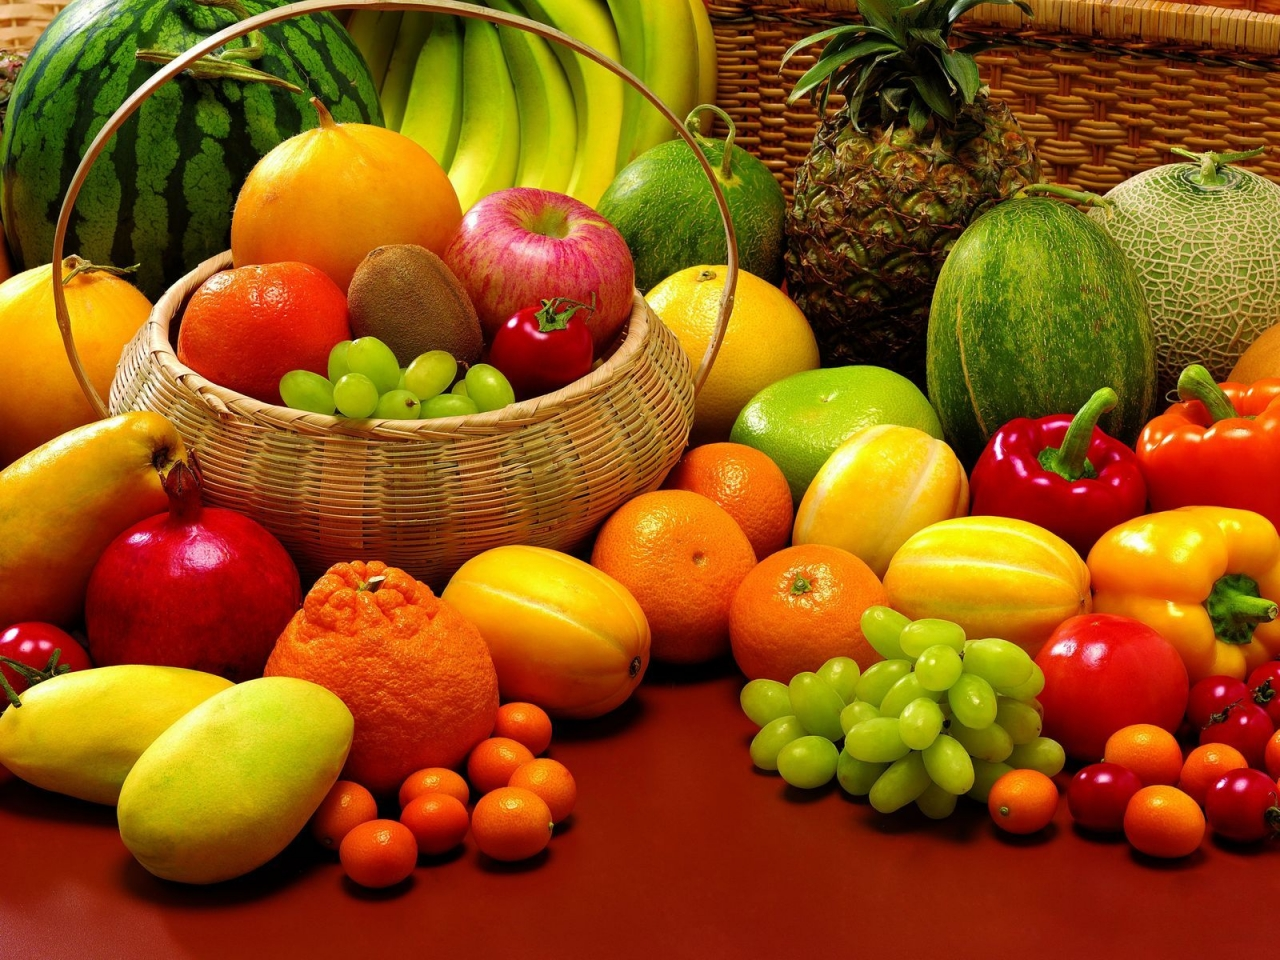 Fruits and Veggies for 1280 x 960 resolution